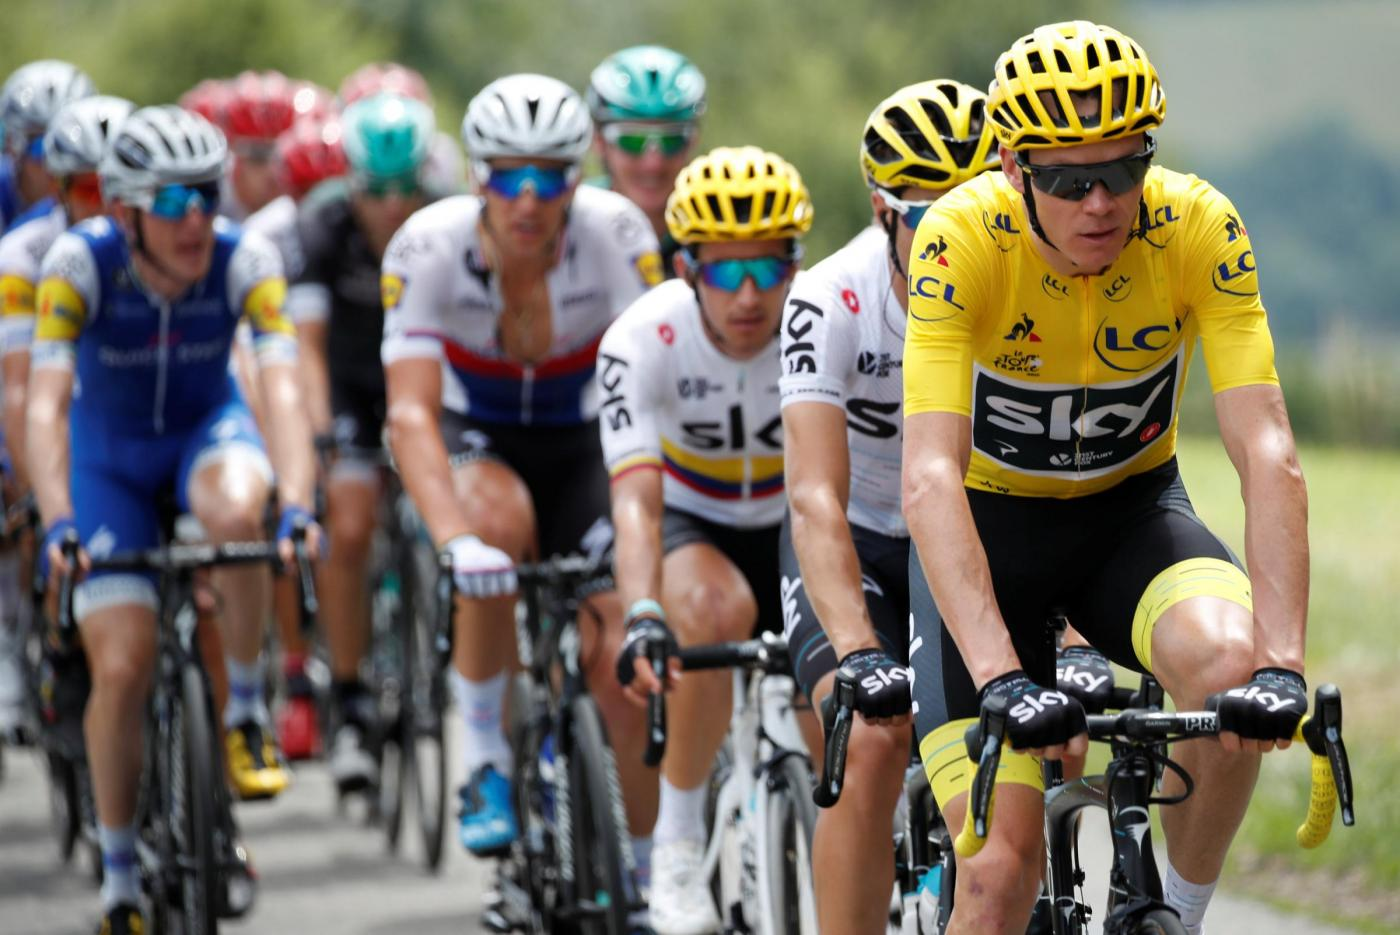 Tour de France, Kittel imprendibile